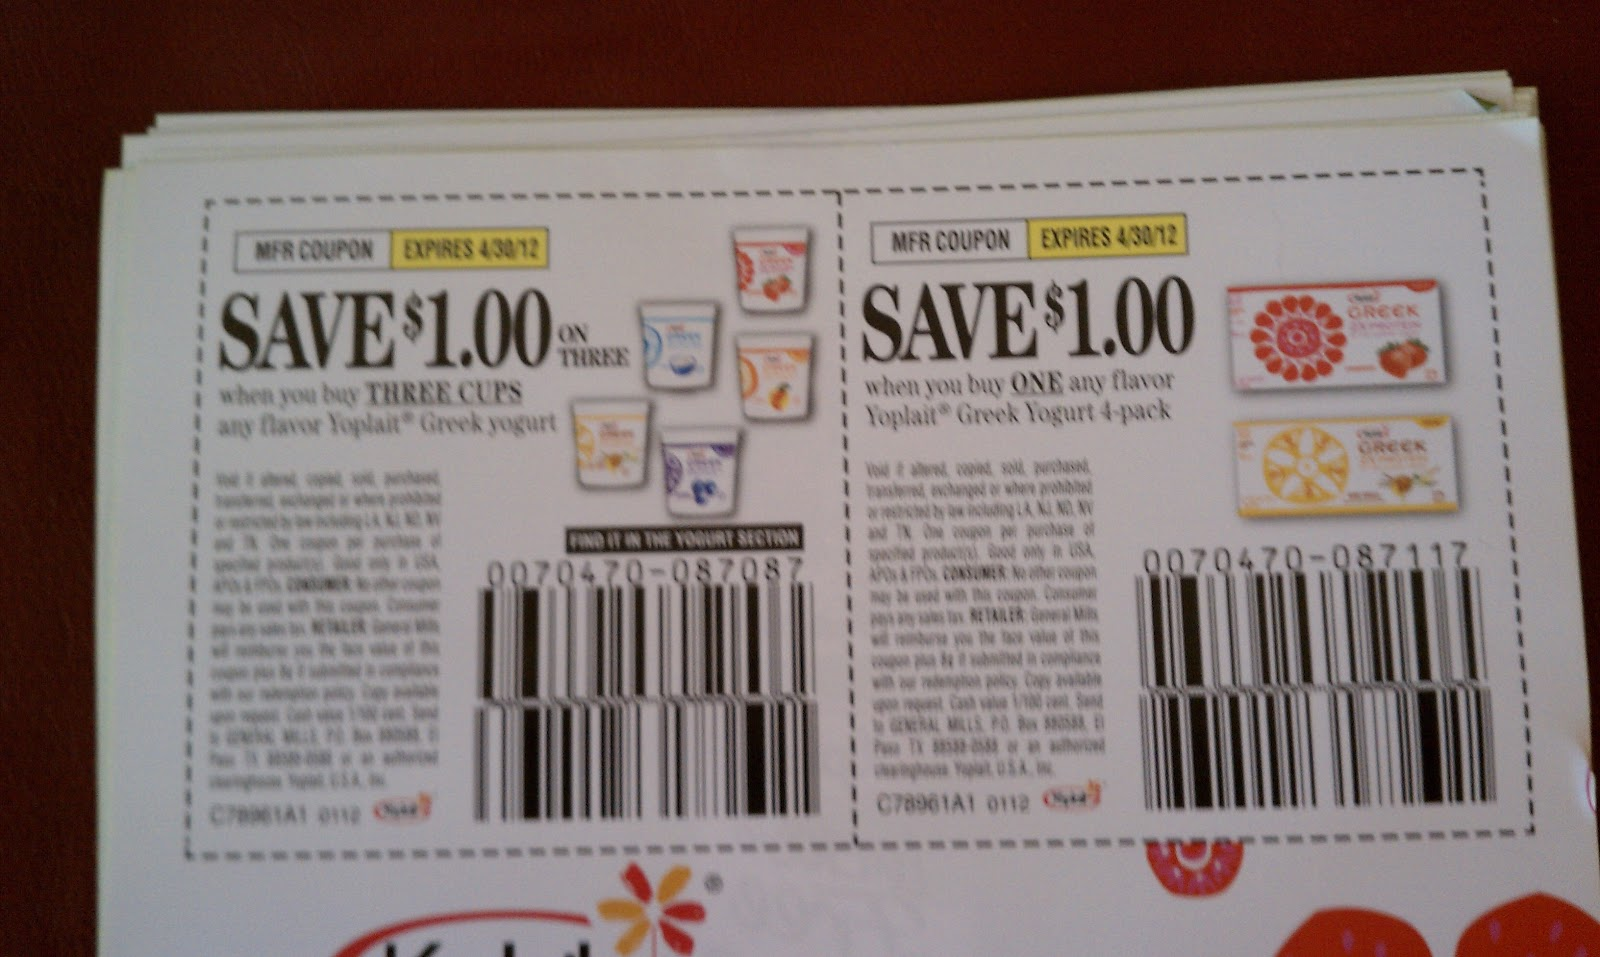 Sweet deals coupons